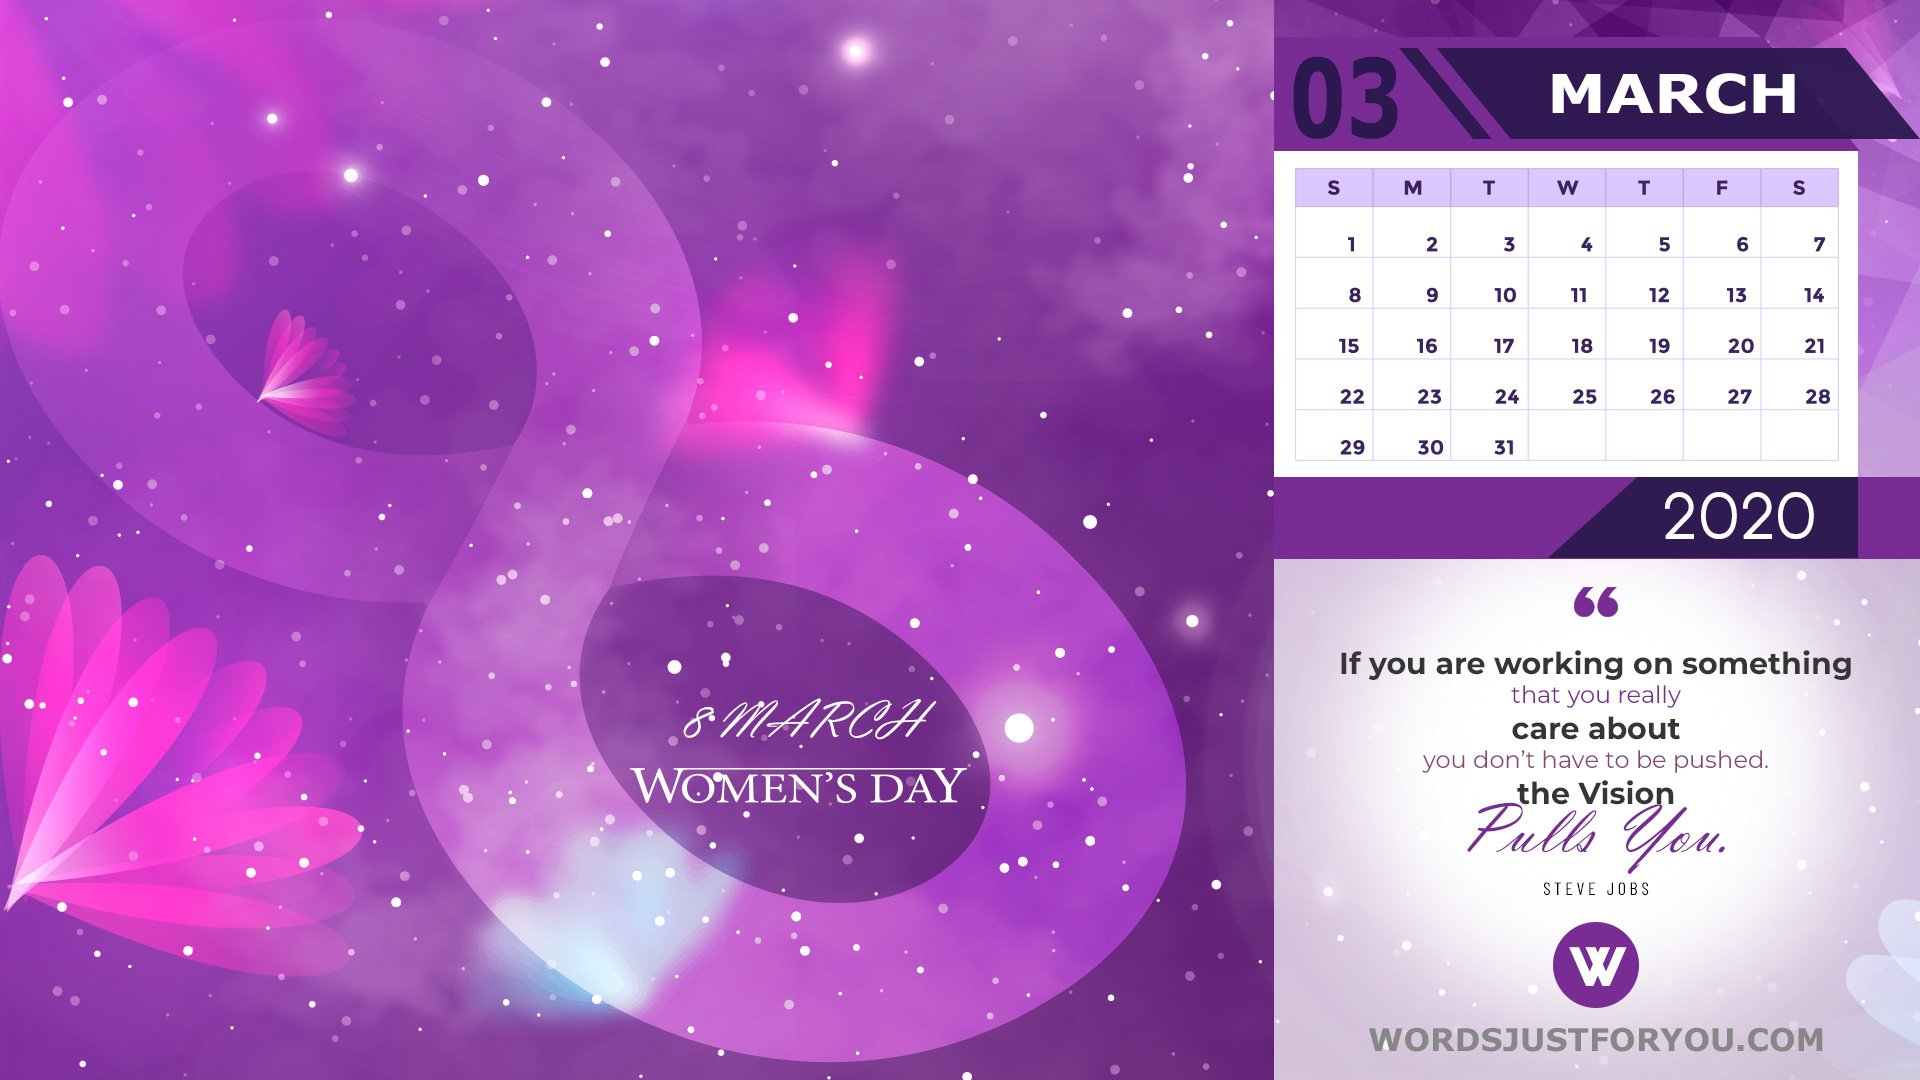 March 2020 Calendar Wallpaper Womens Day 5929 Words Just for 1920x1080